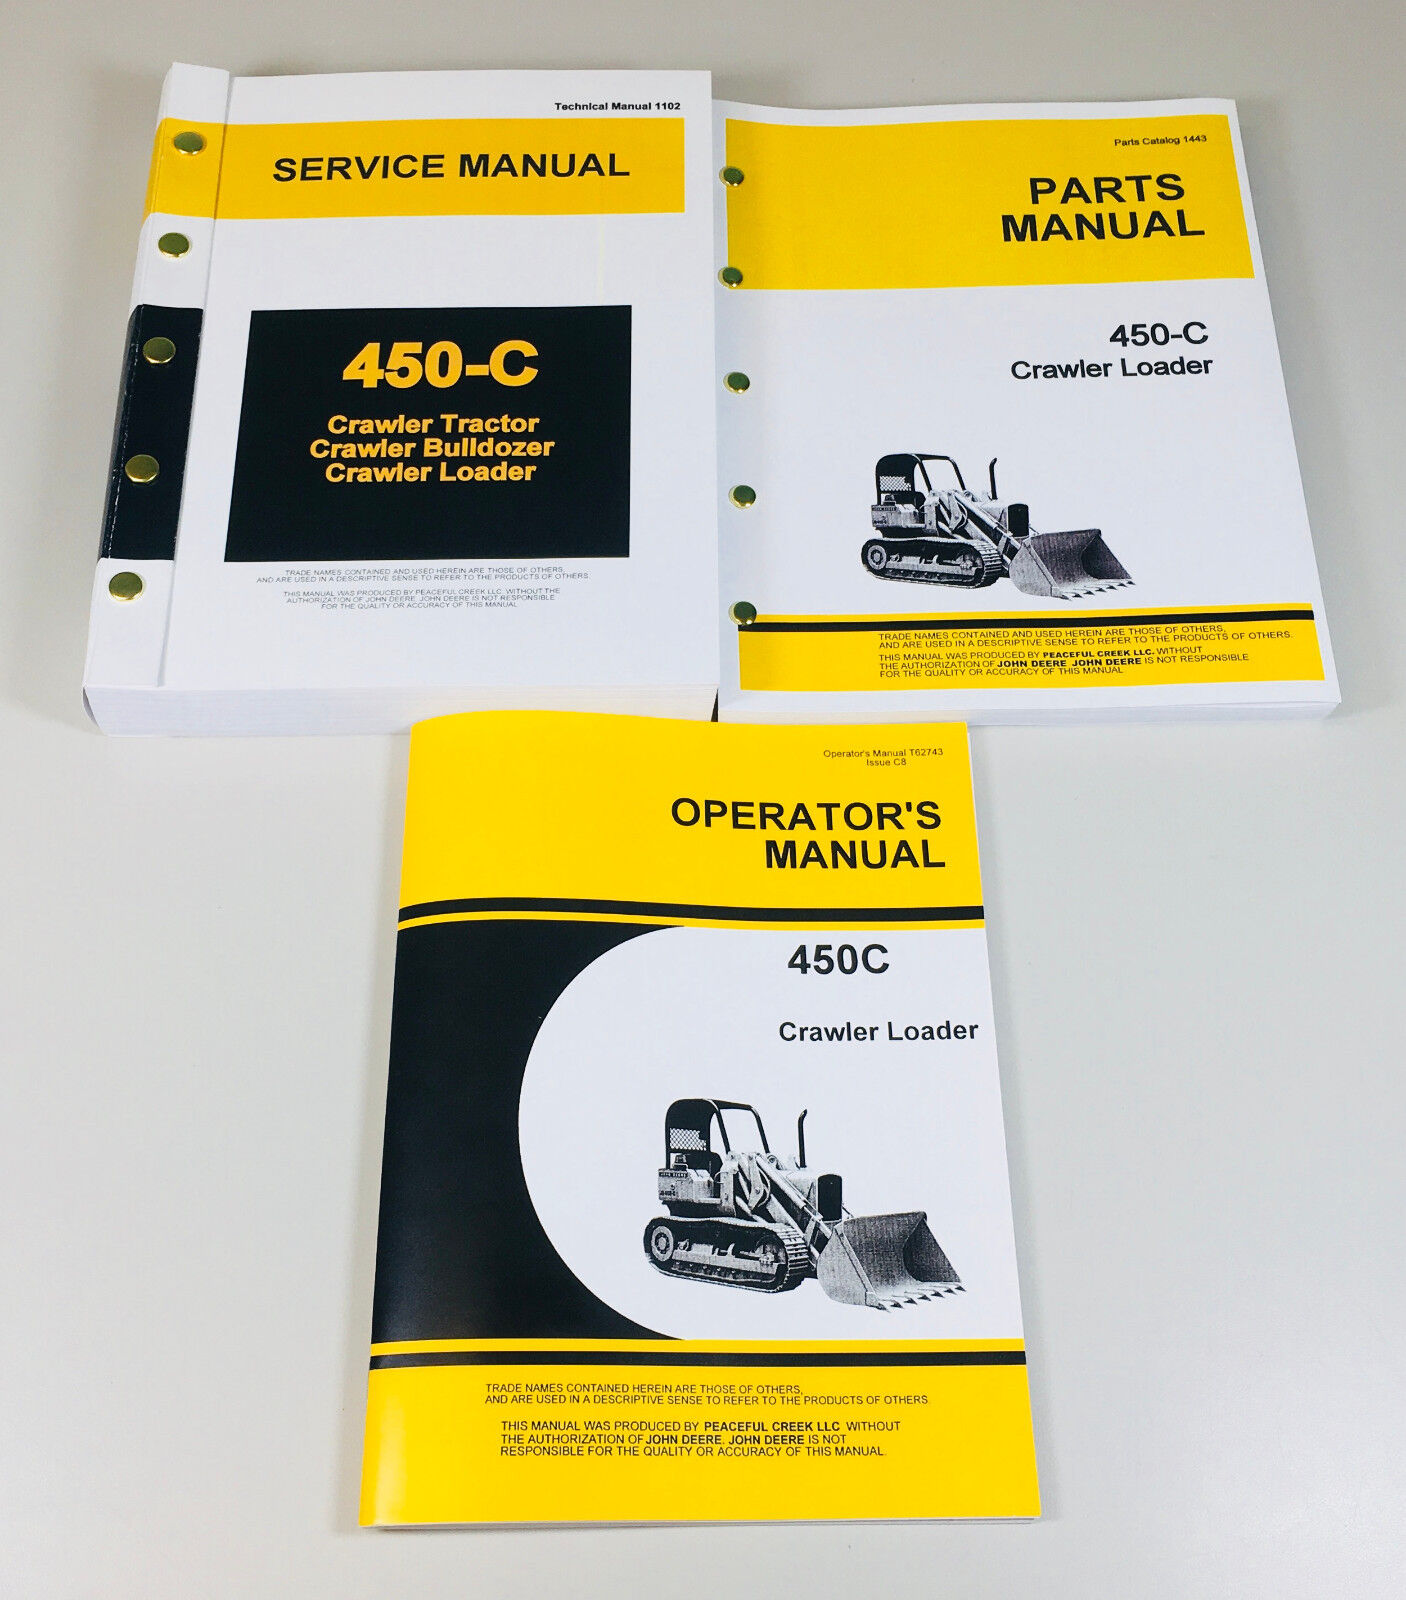 Service Manual Table of Contents